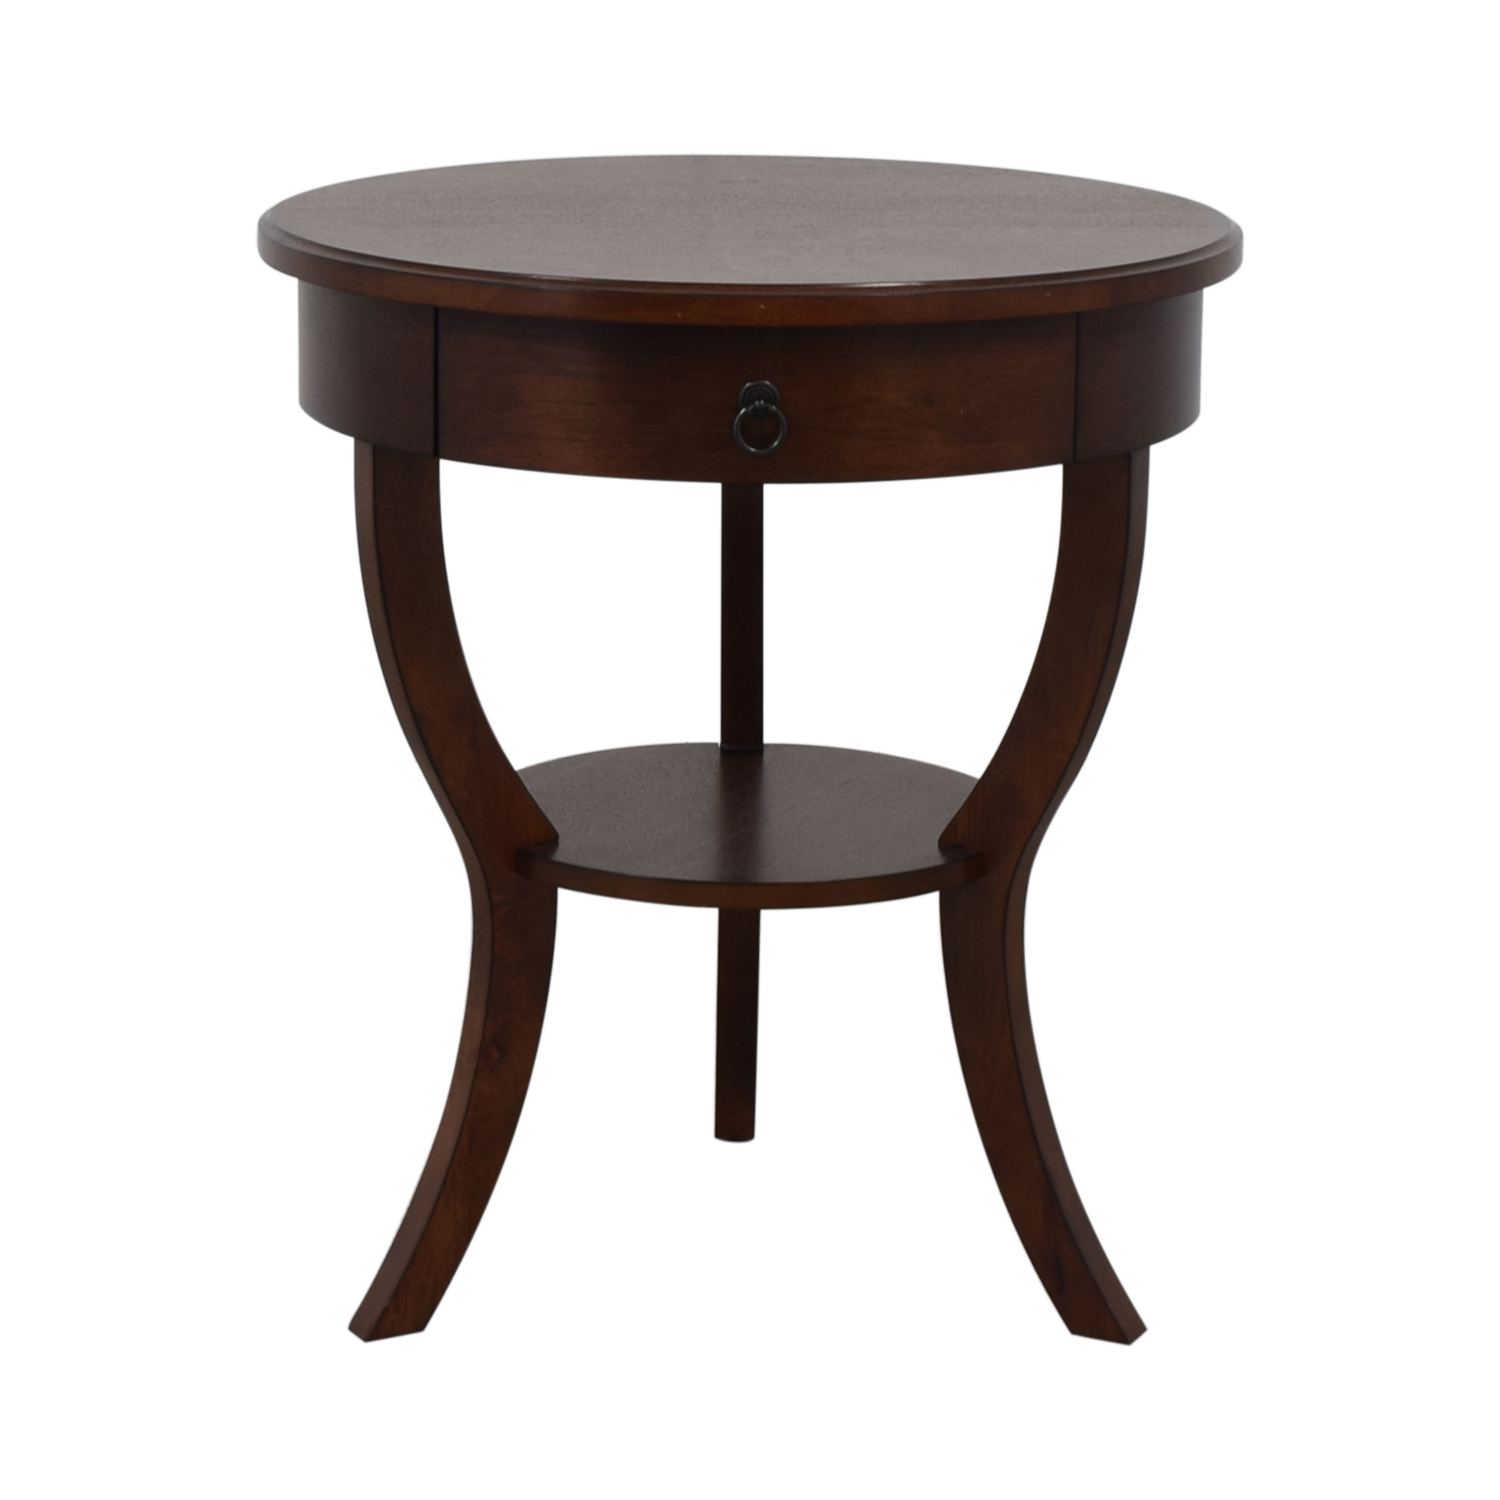 Pottery Barn Carrie Round Single-Drawer Pedestal End Table sale